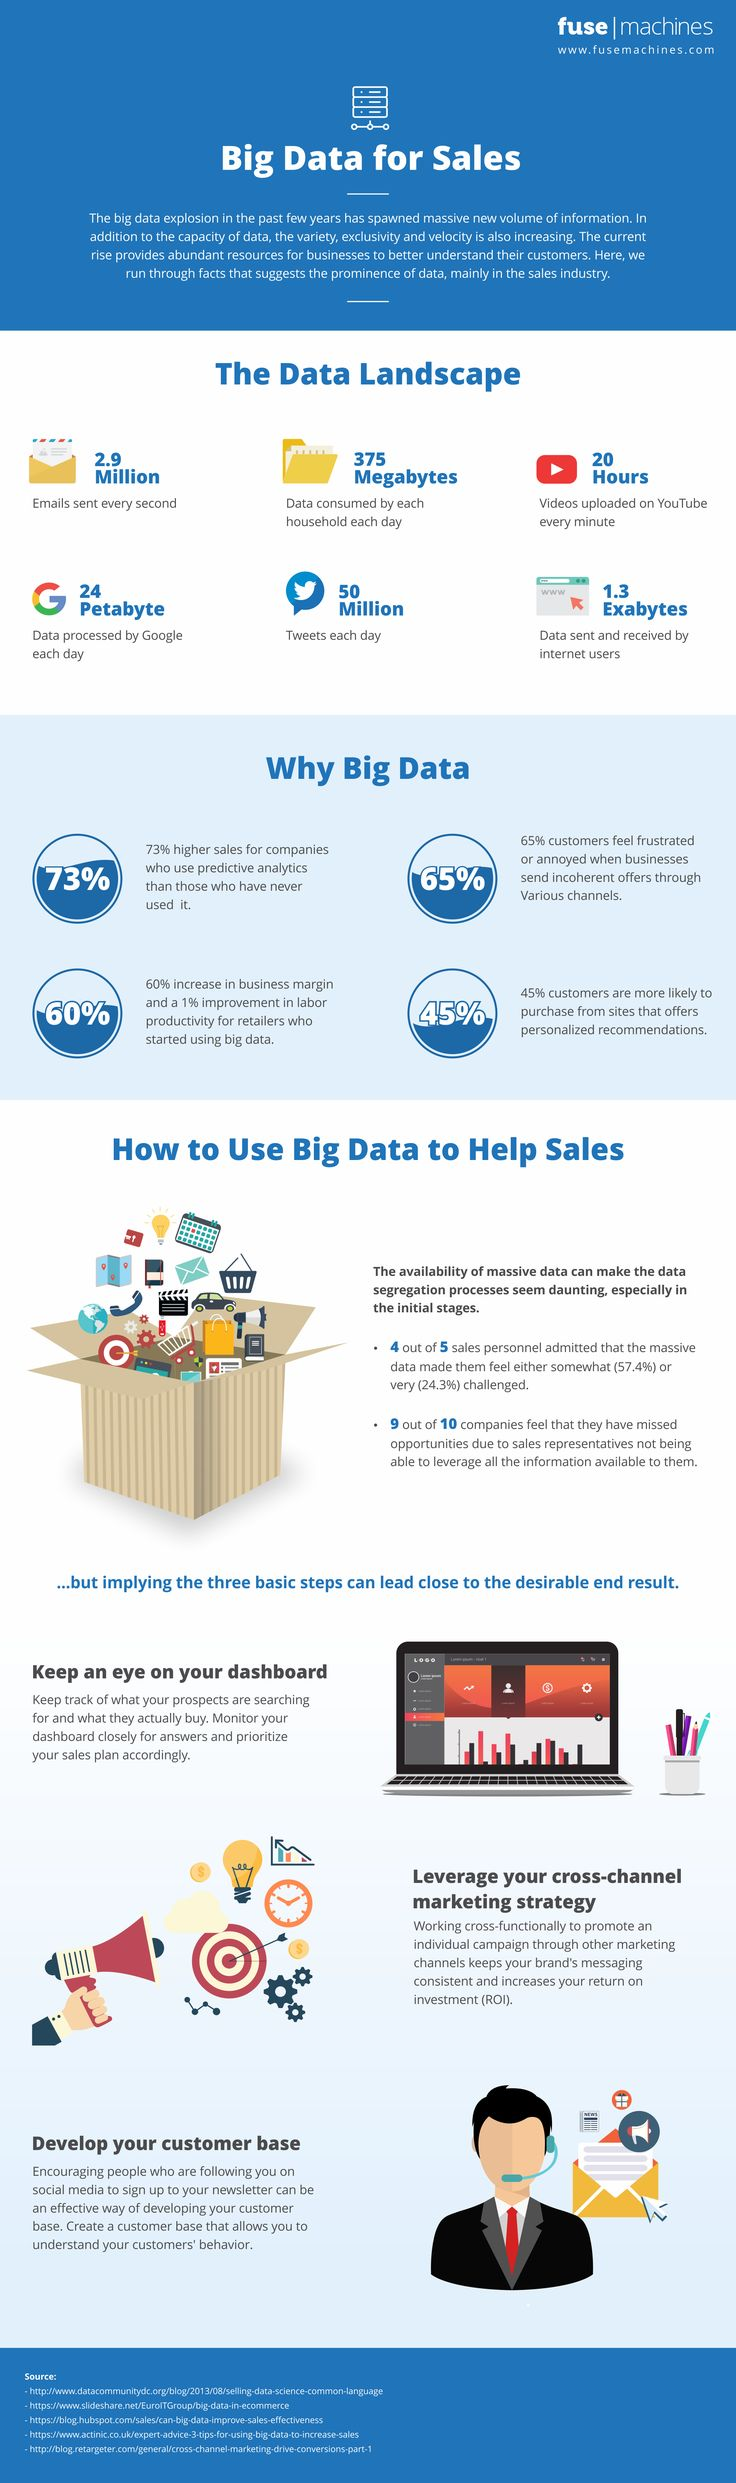 How to Increase Sales Using Big Data